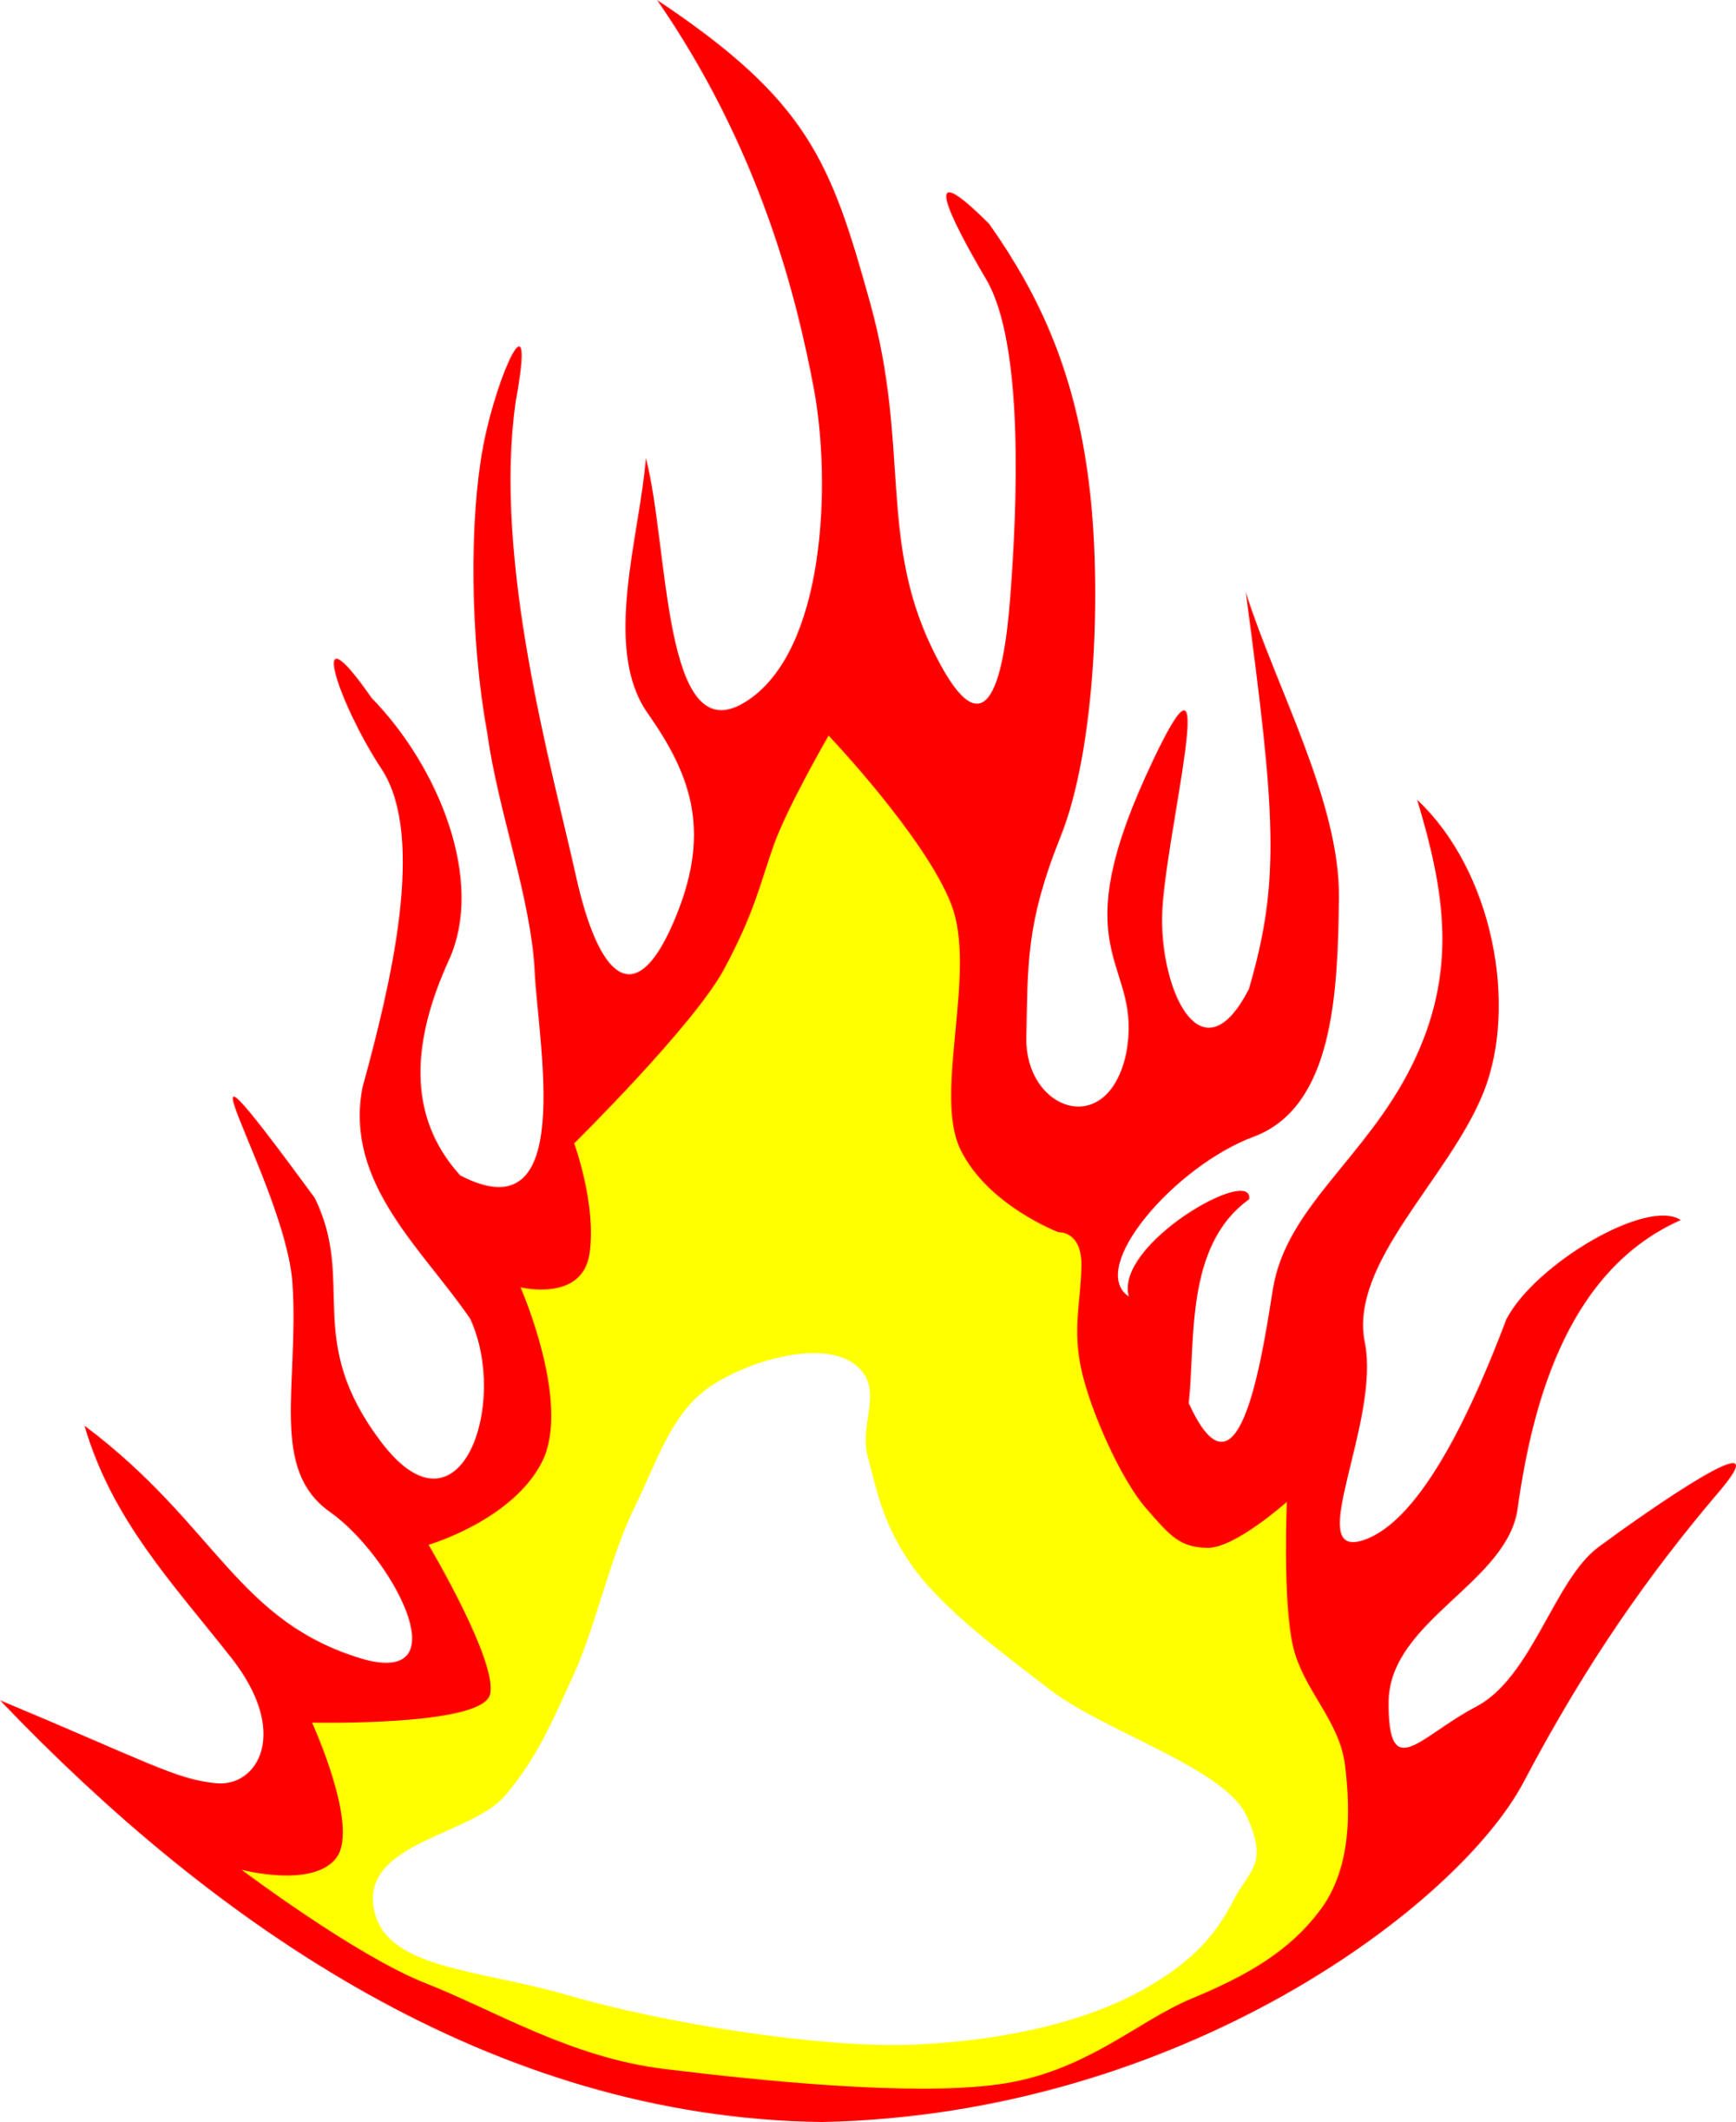 hight resolution of free download 5 fire flame clipart 1 png